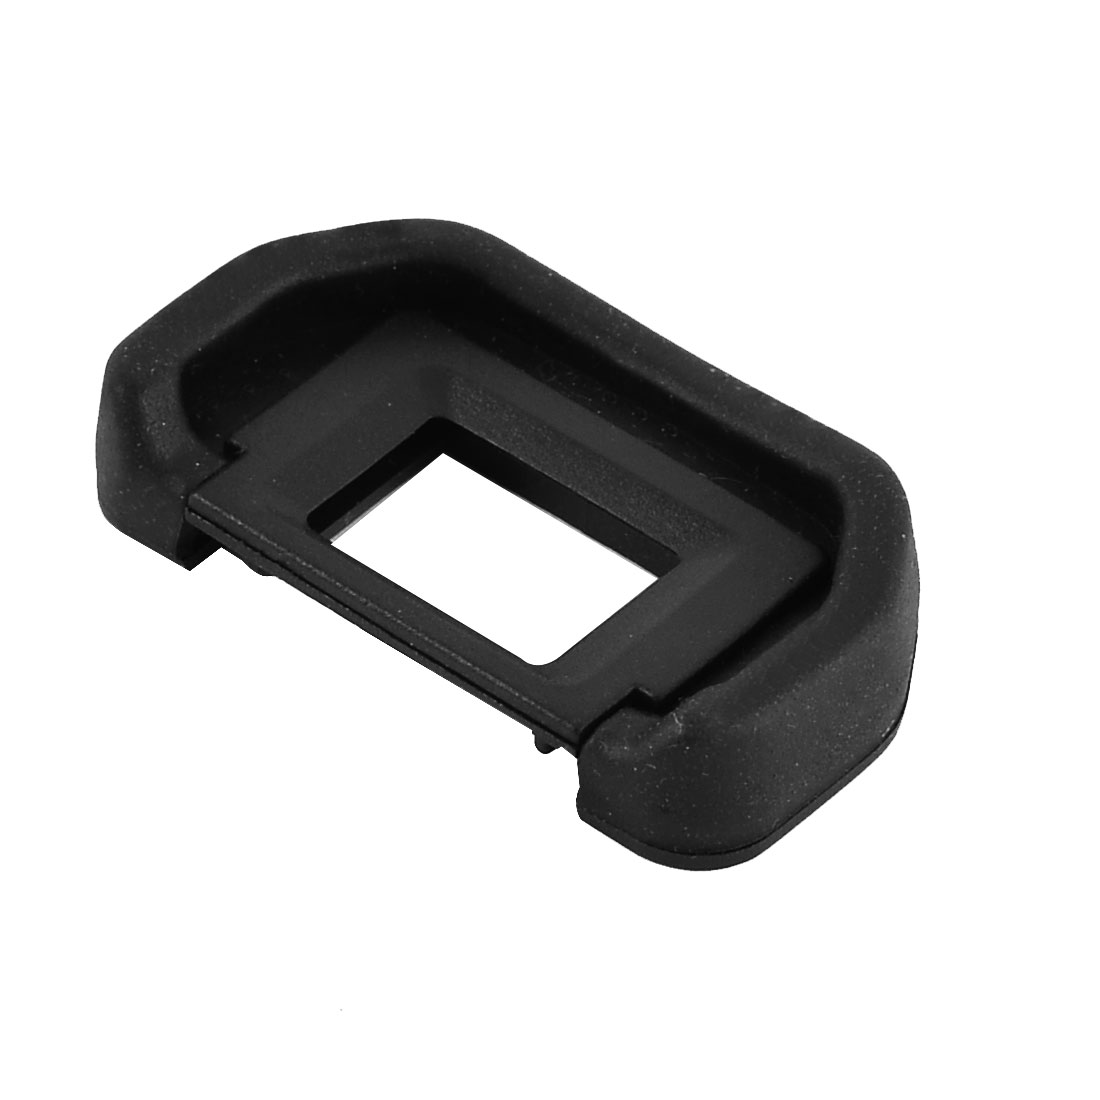 Black Rubber Eyecup Eyepiece EB for Canon Camera EOS 5D Mark II/5D/50D/40D